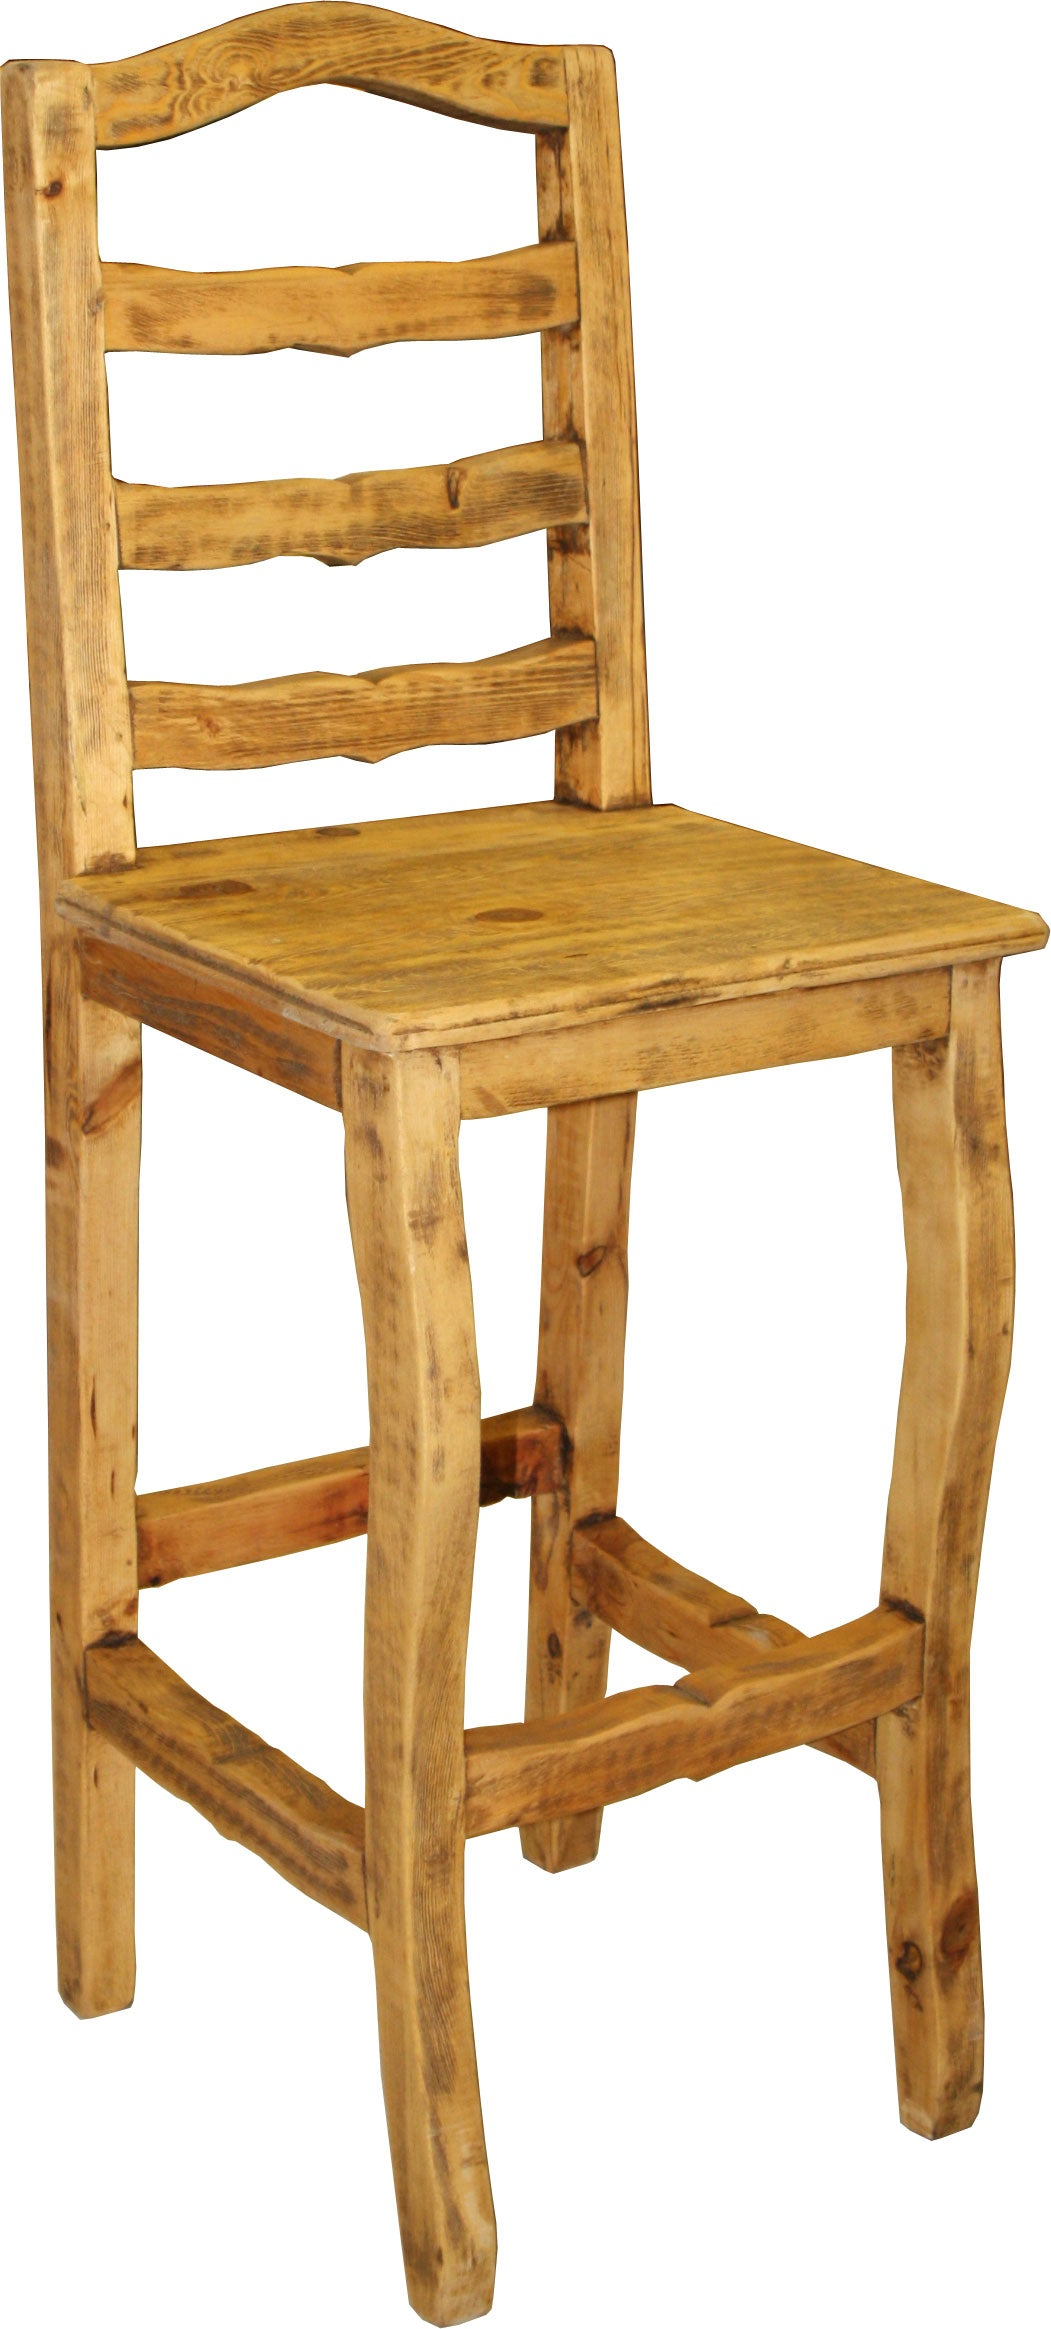 Provenzal Bar Stool